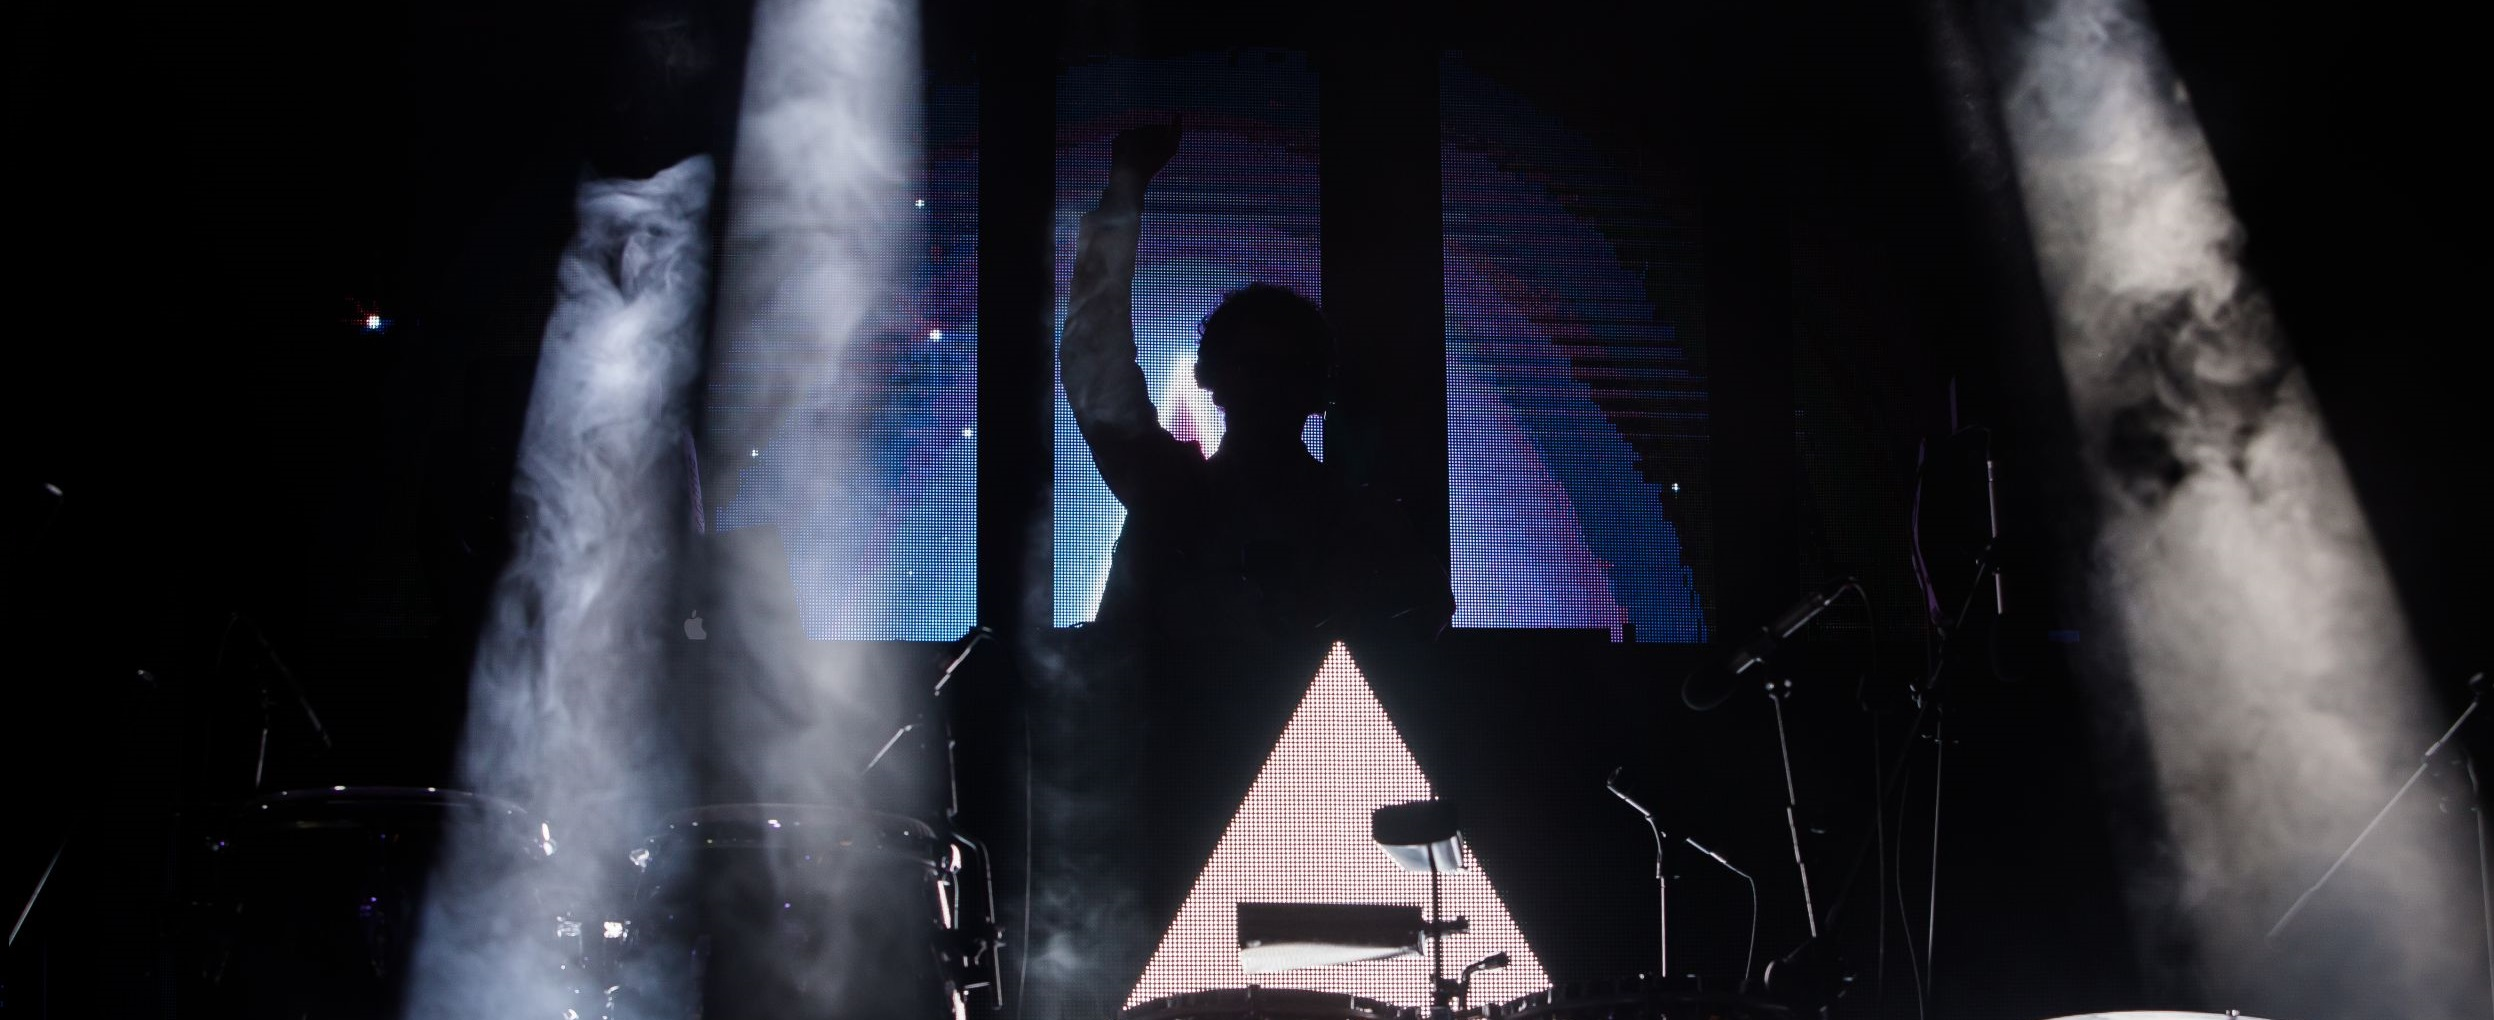 Led Video Dj Booth - Light F/X Pro's - Events - Weddings - Parties